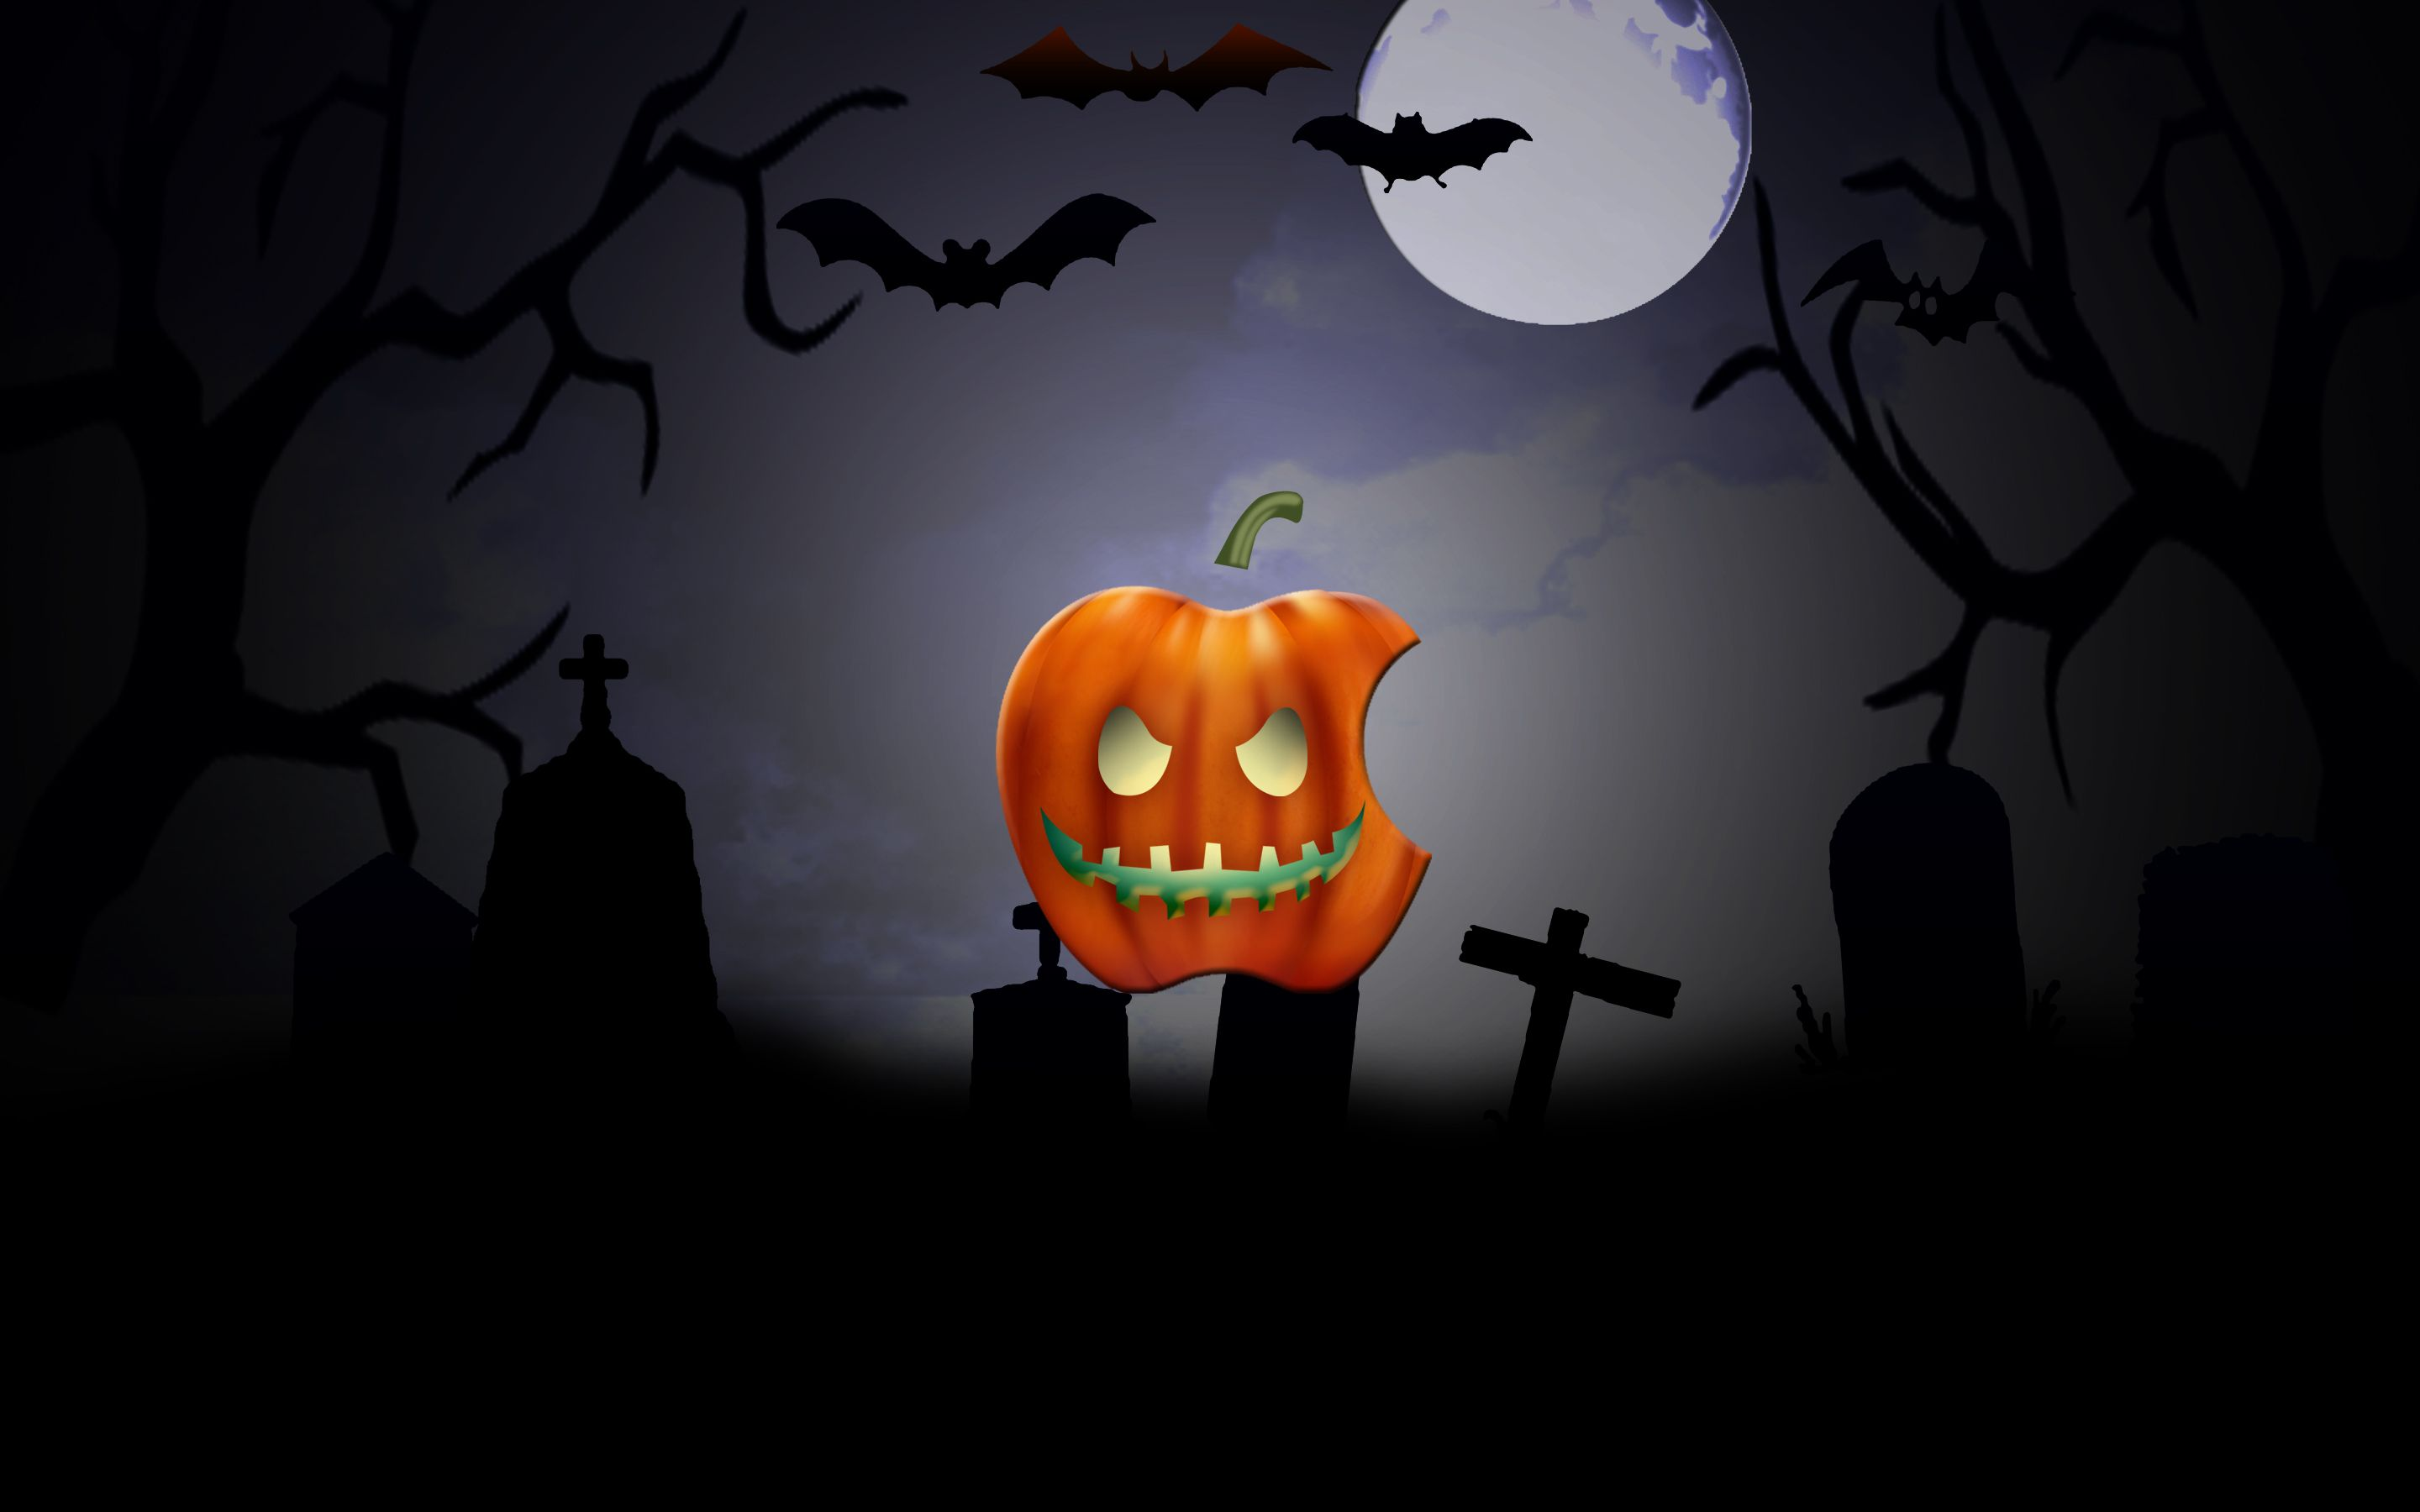 Most Inspiring Wallpaper Macbook Halloween - c7630f75078f997182f6fd9f49e821a7  You Should Have_775551.jpg